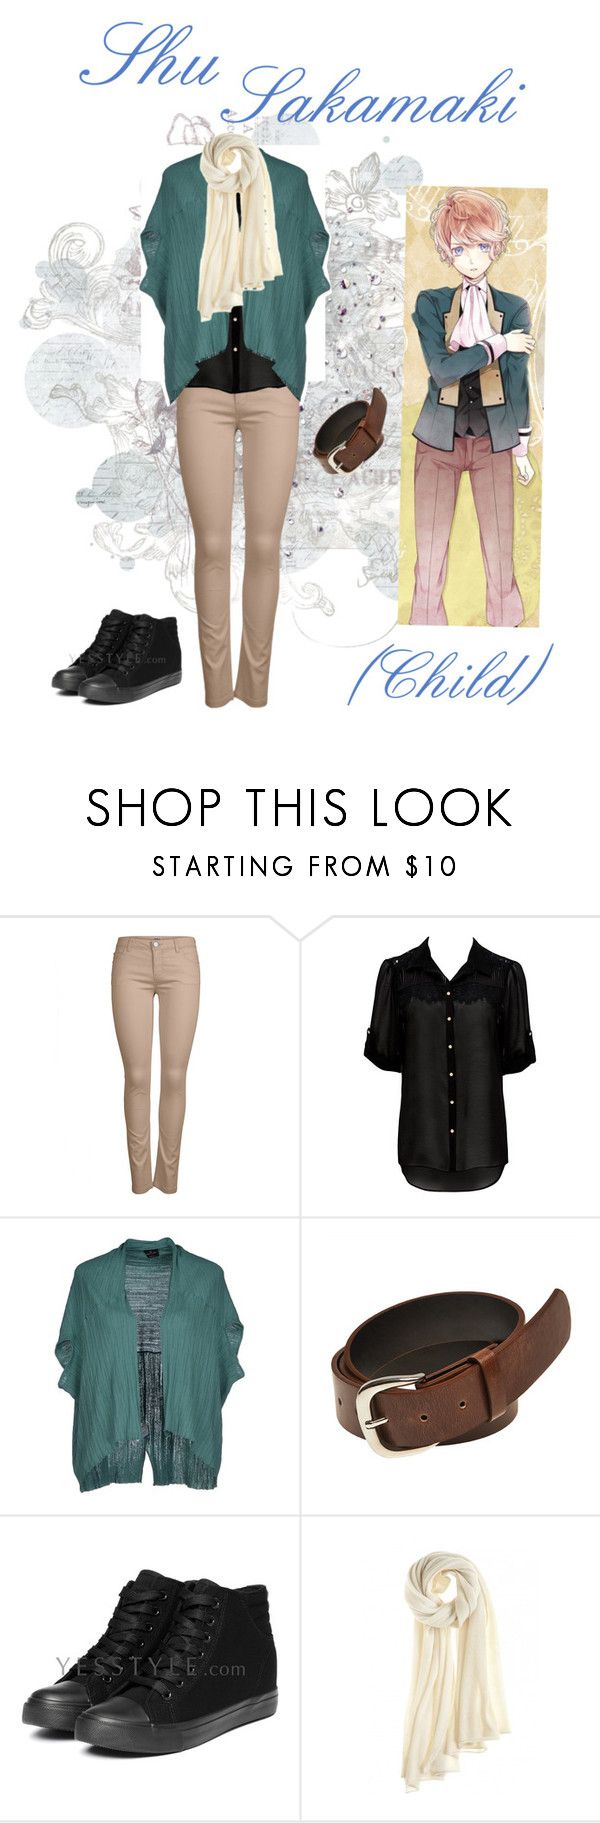 """""""Sakamaki Shu Casual Cosplay (Child), Diabolik Lovers"""" by psychometorzi ❤ liked on Polyvore featuring ONLY, Forever New, Gotha, Wet Seal, yeswalker and Calypso St. Barth"""